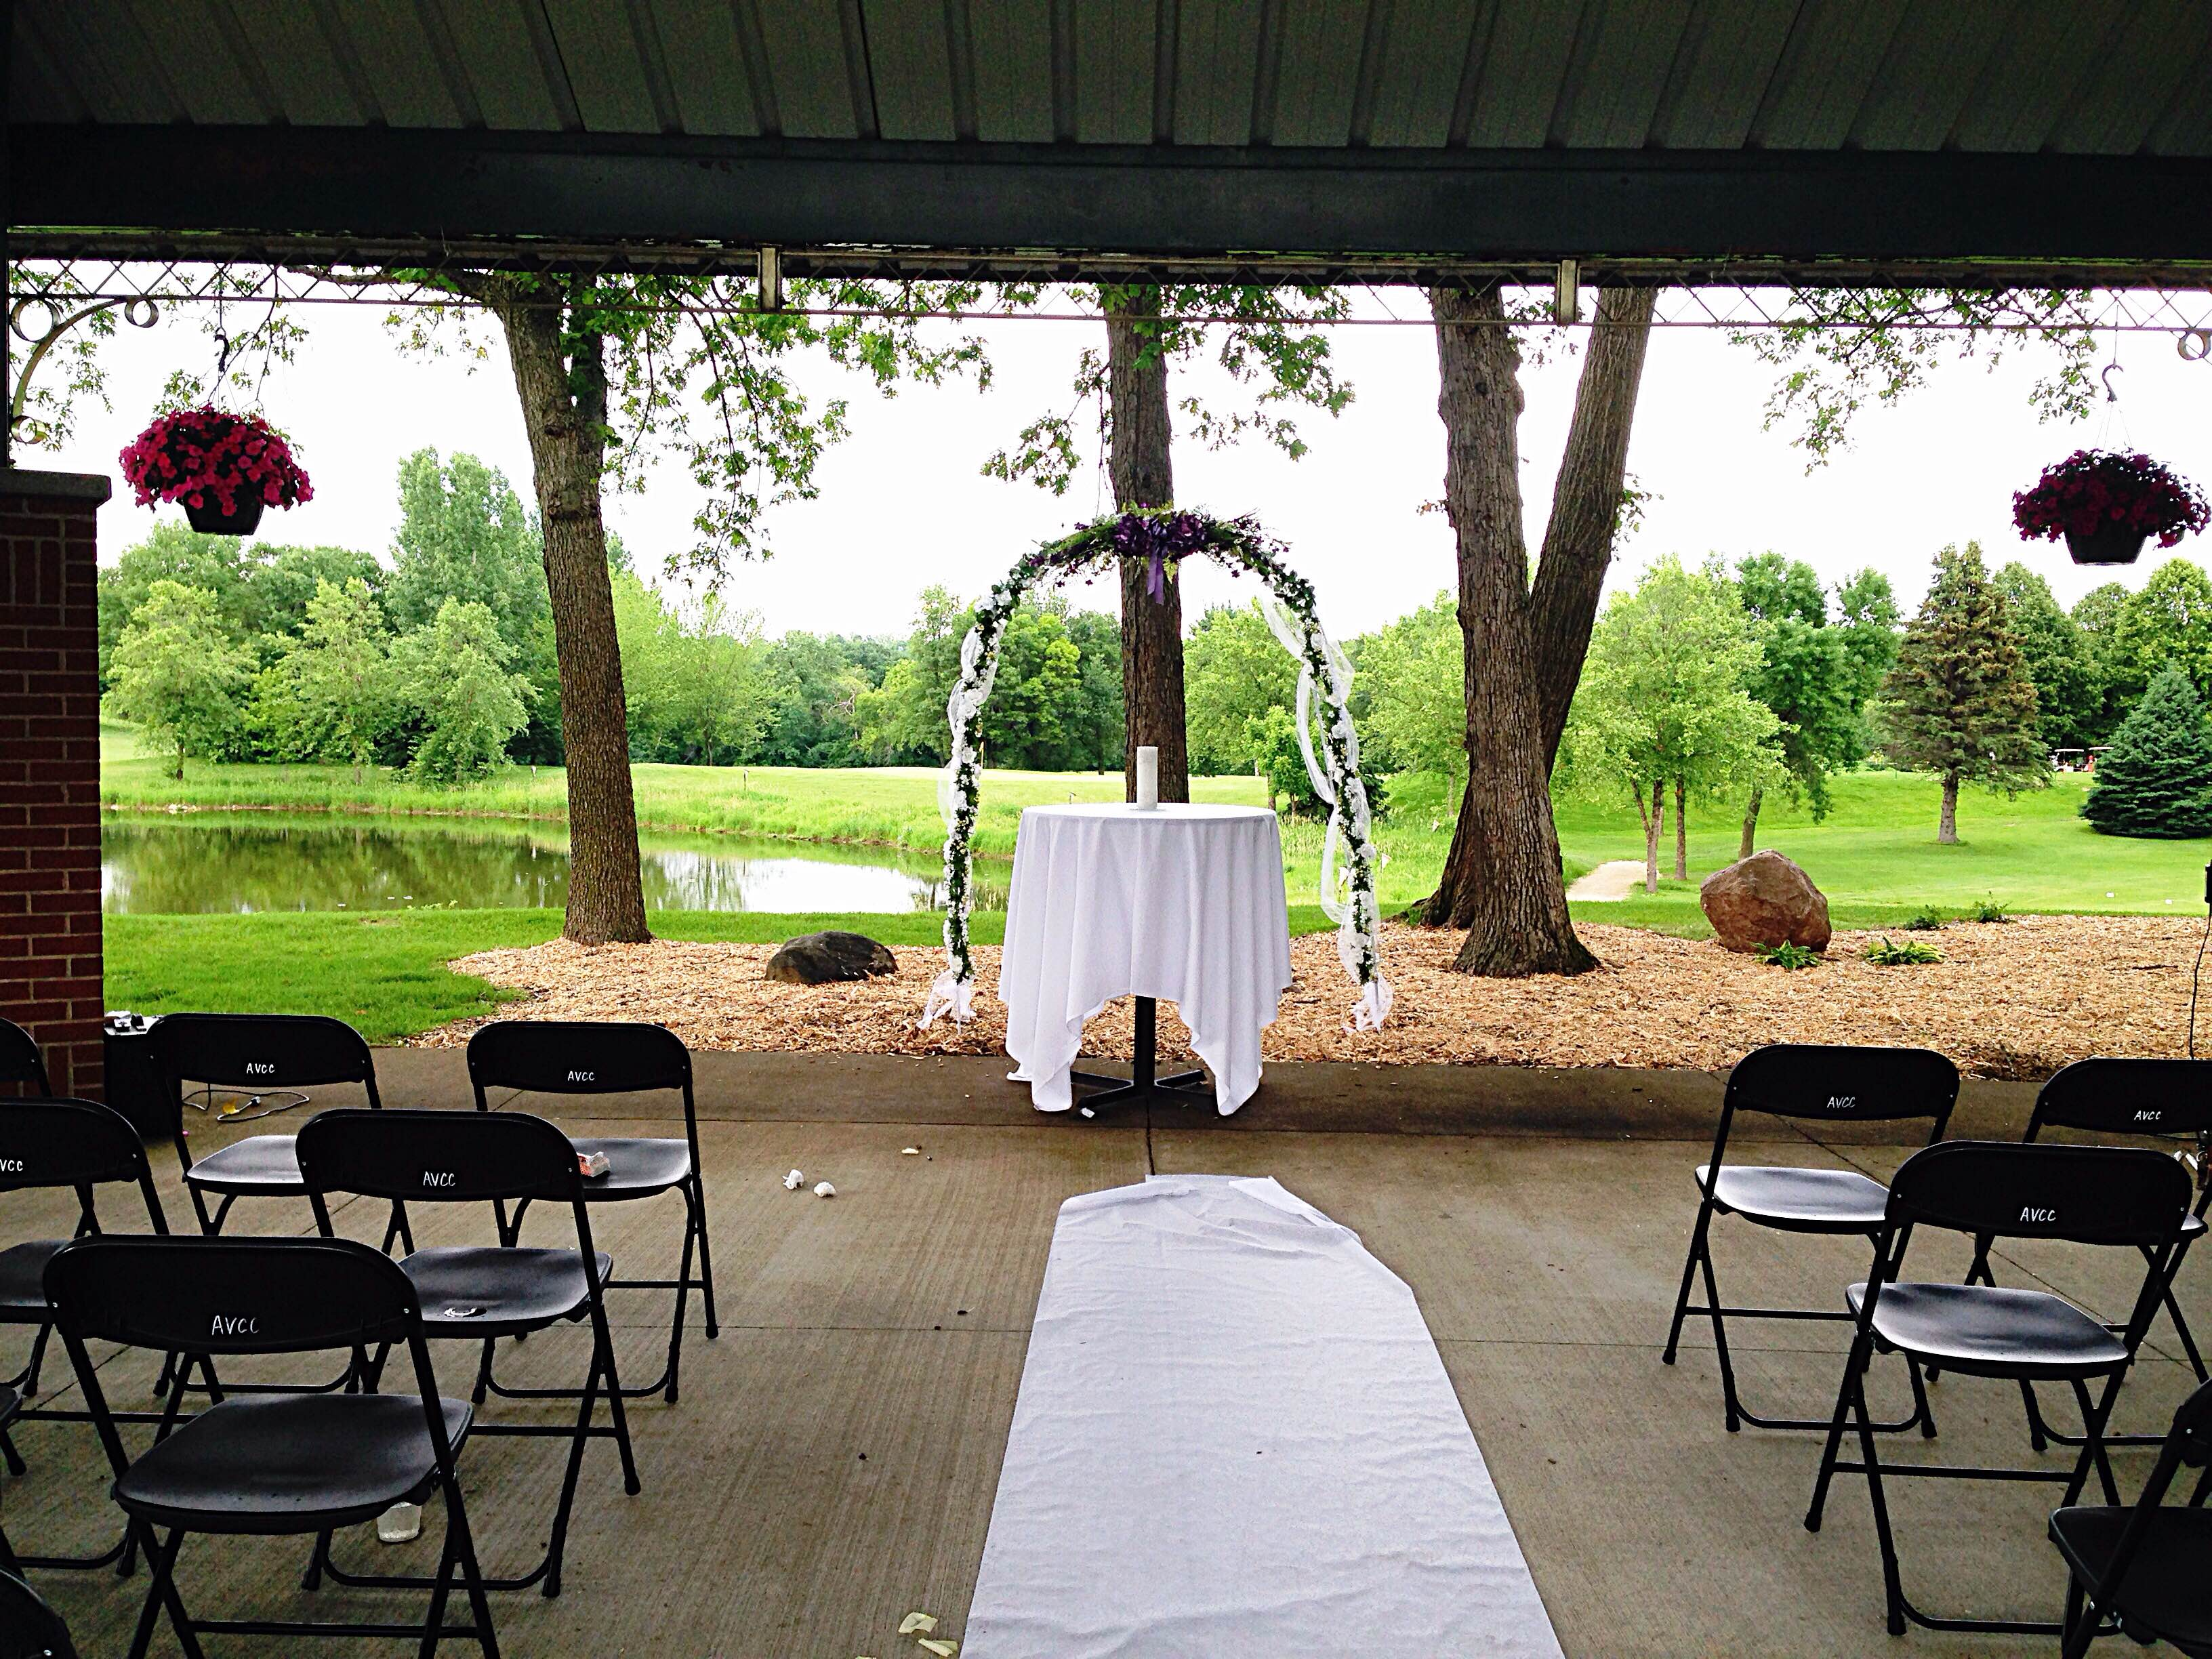 outdoor shelter set-up for wedding with golf course in background